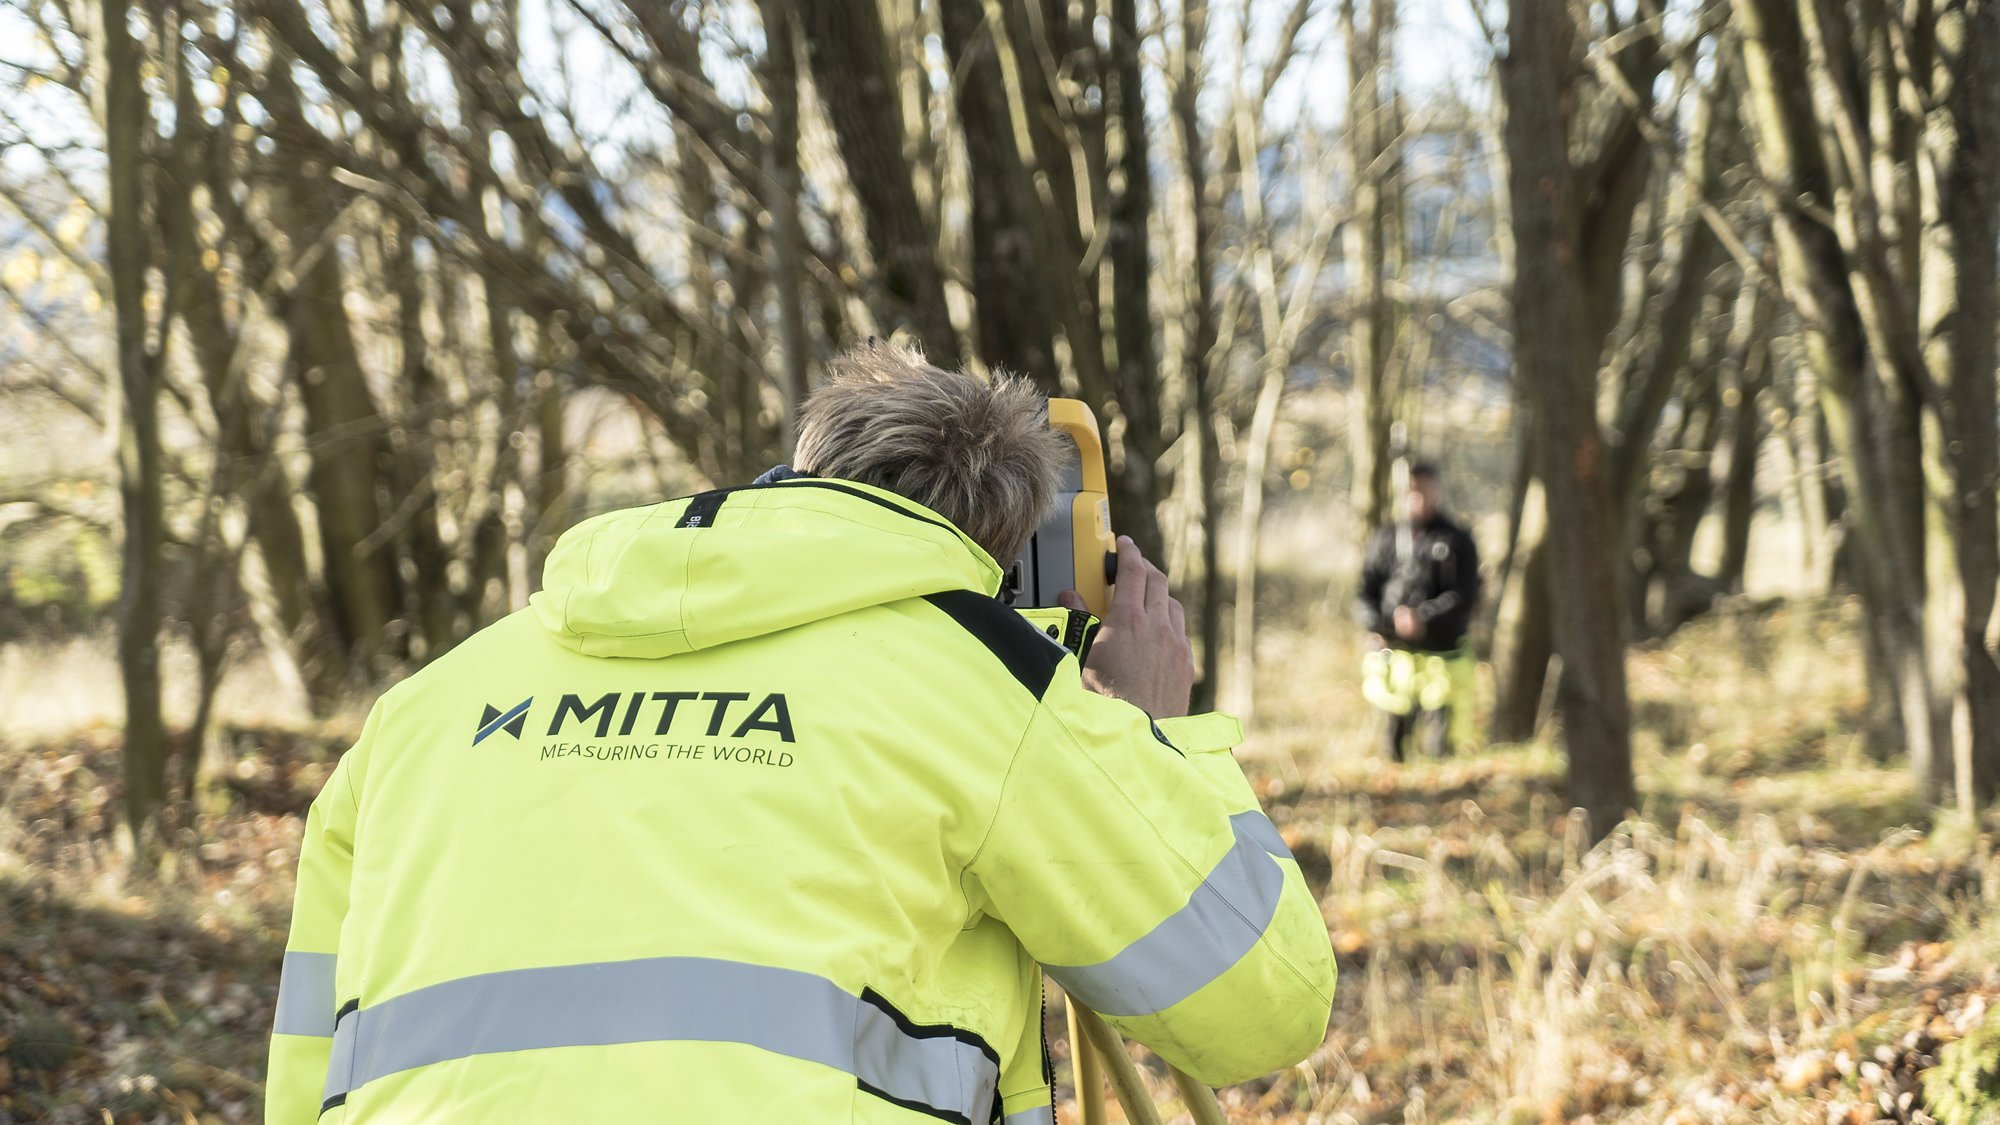 mies mittaa, man is surveying